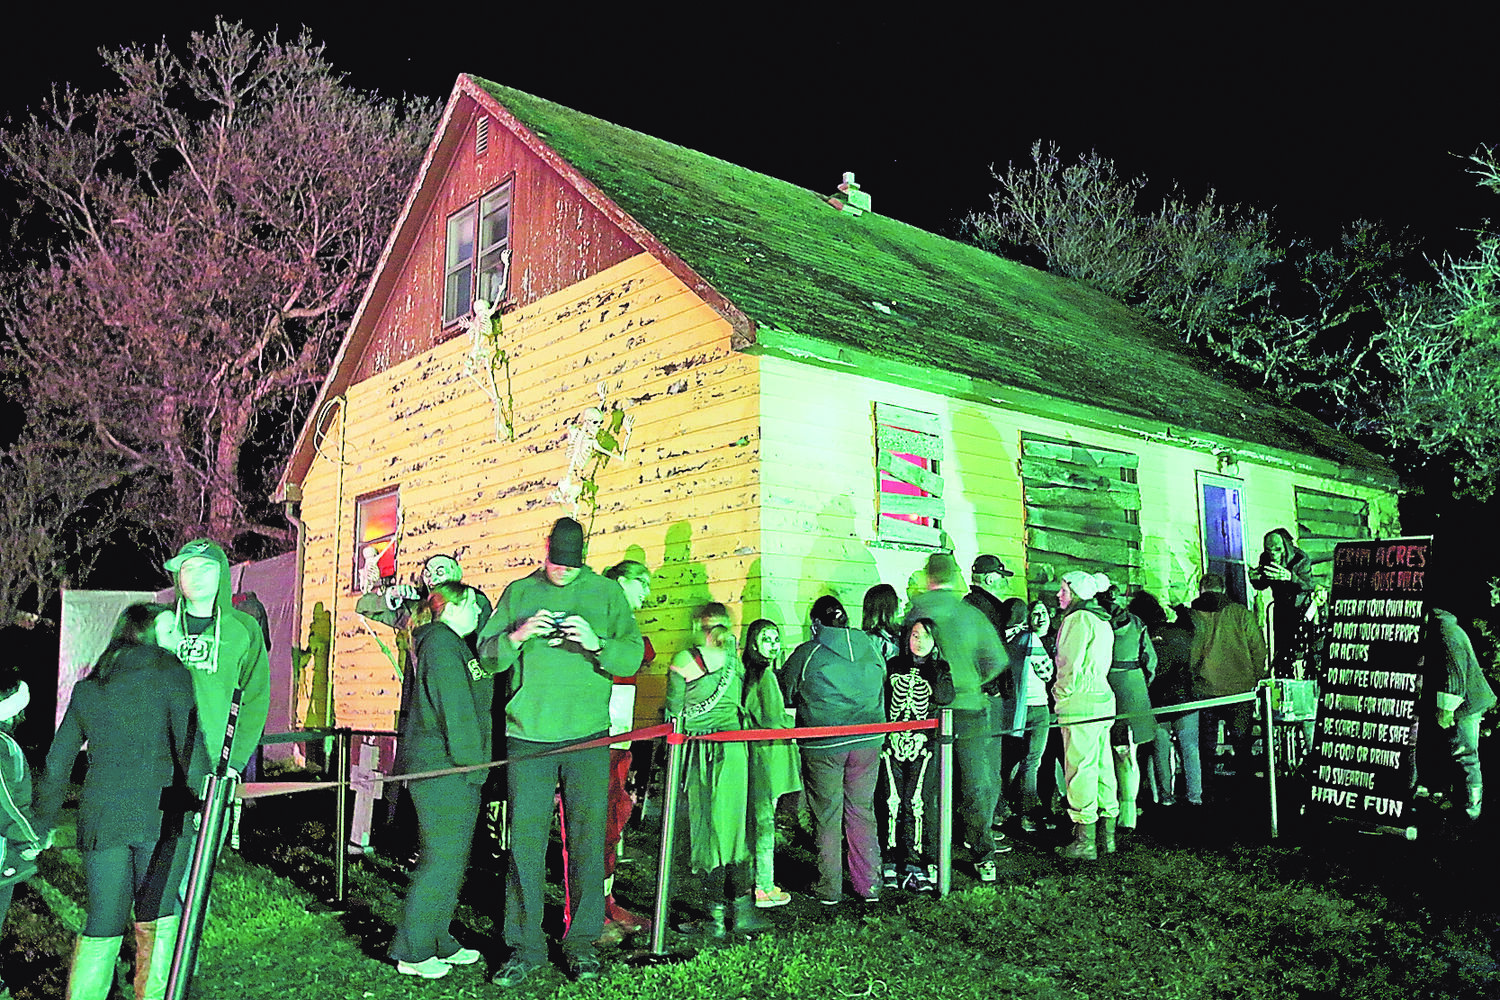 Visitors wait in line to enter the haunted house during the final day of the Grim Acres Scare Away Cancer fundraiser for the Canadian Cancer Society on Saturday night. (Tim Smith/Brandon Sun)